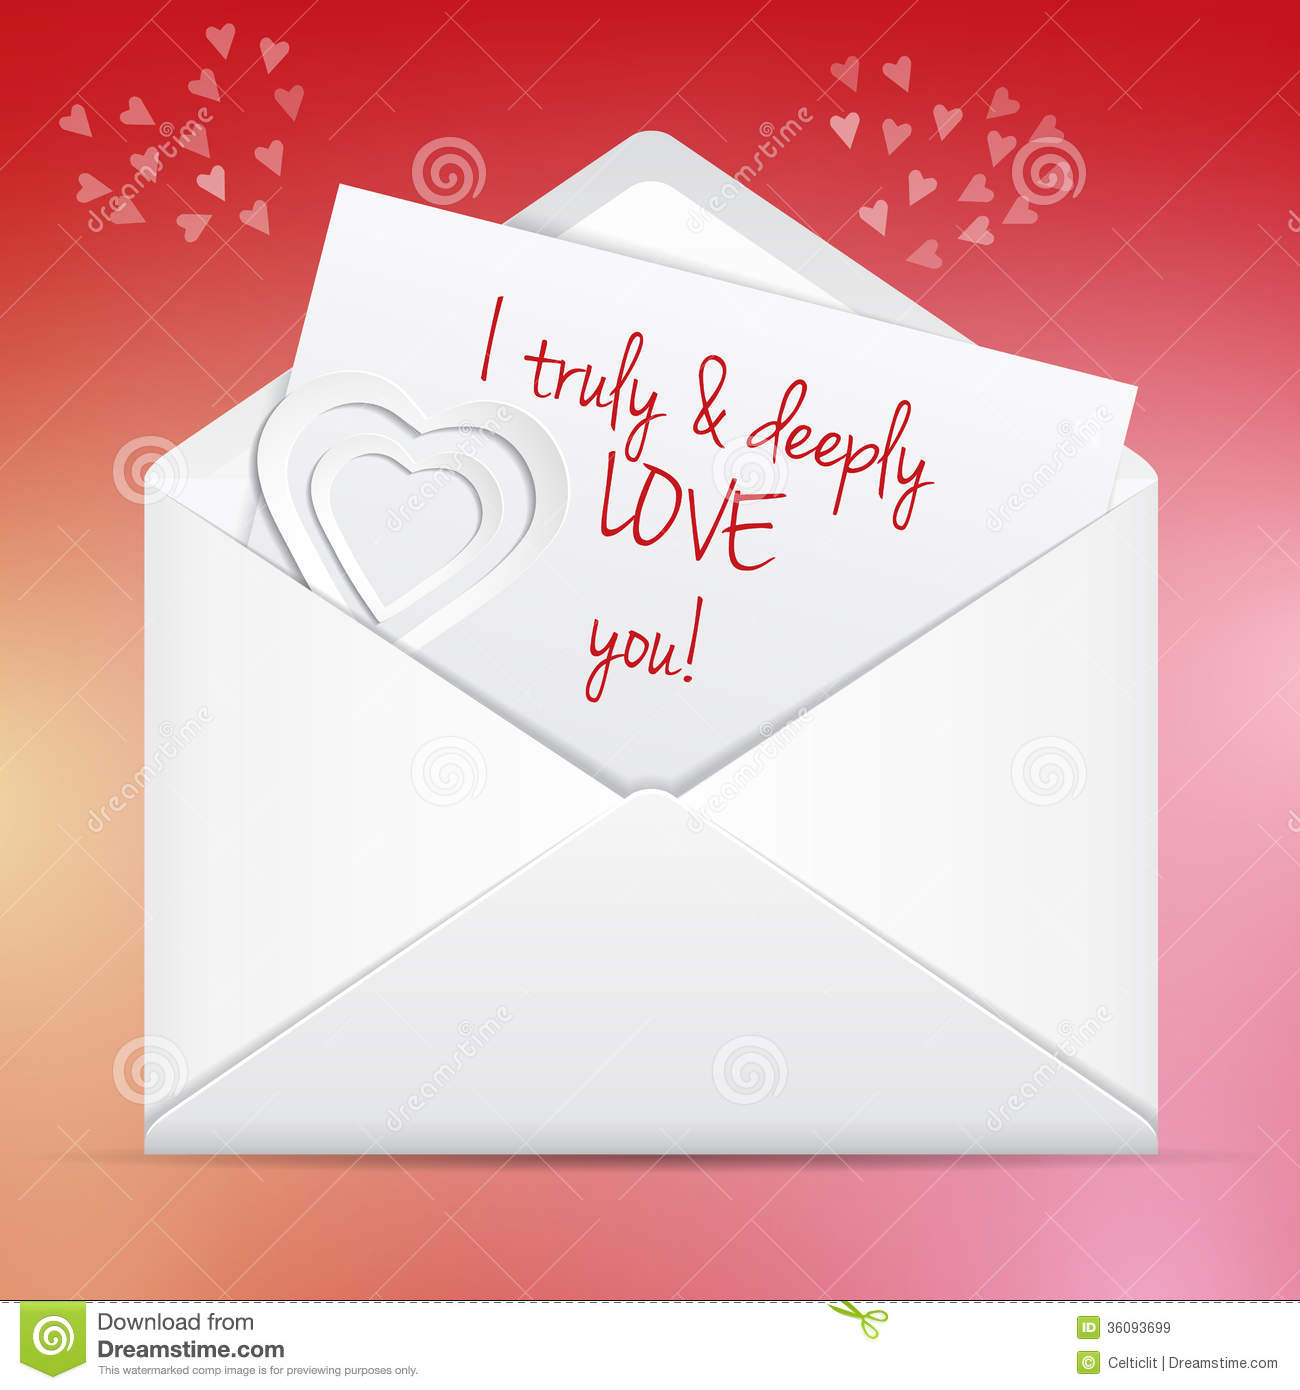 Love Letter Royalty Free Stock Images - Image: 36093699